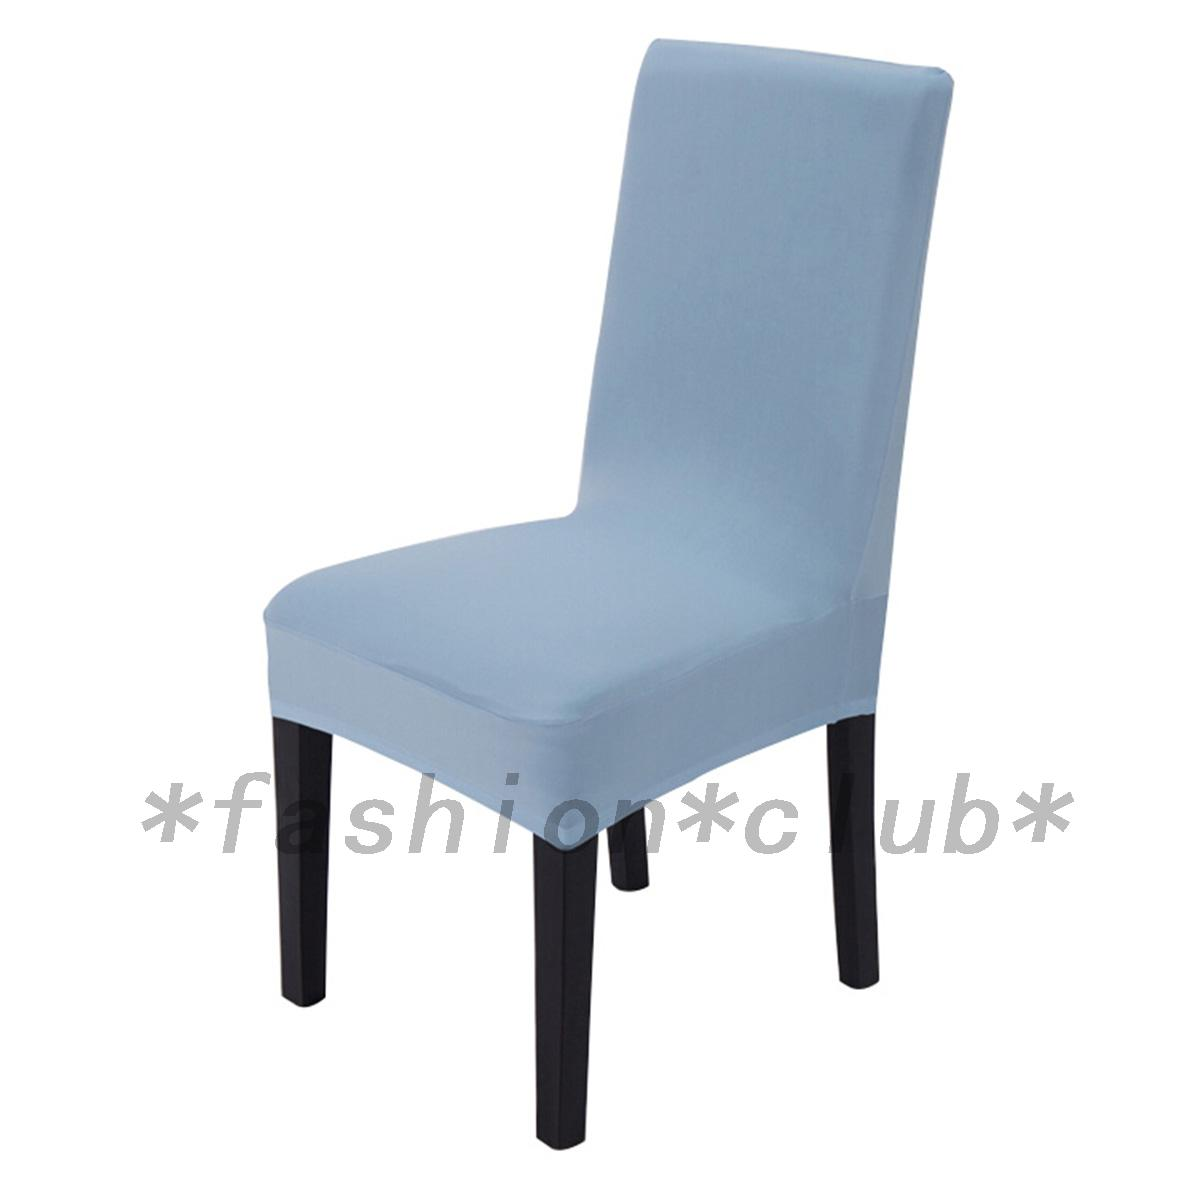 dunelm stretch chair covers steel base price 1pcs universal spandex dining room banquet